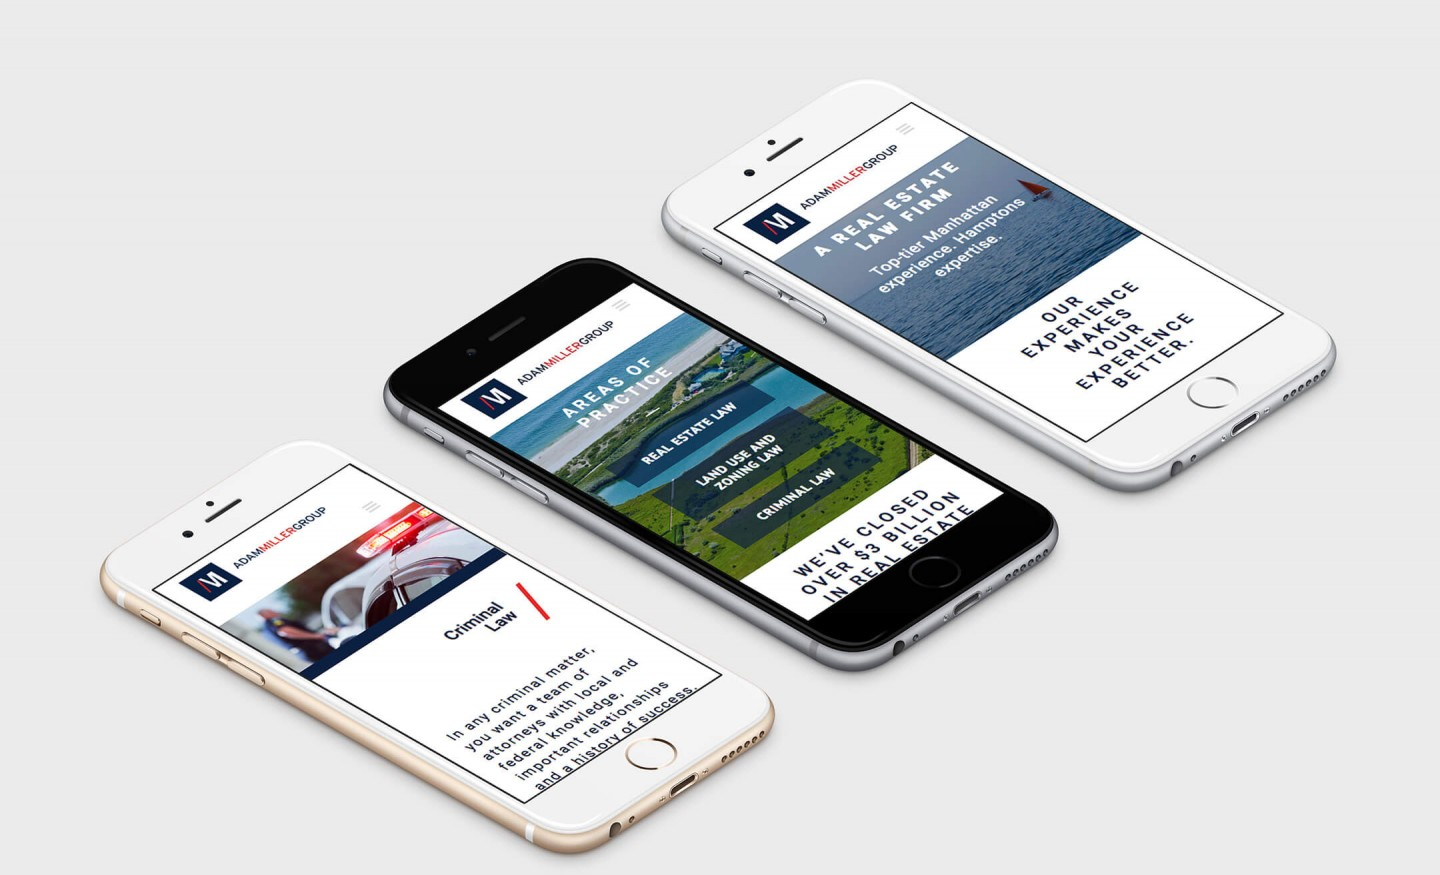 Responsive mobile website design views for Hamptons law firm Adam Miller Group